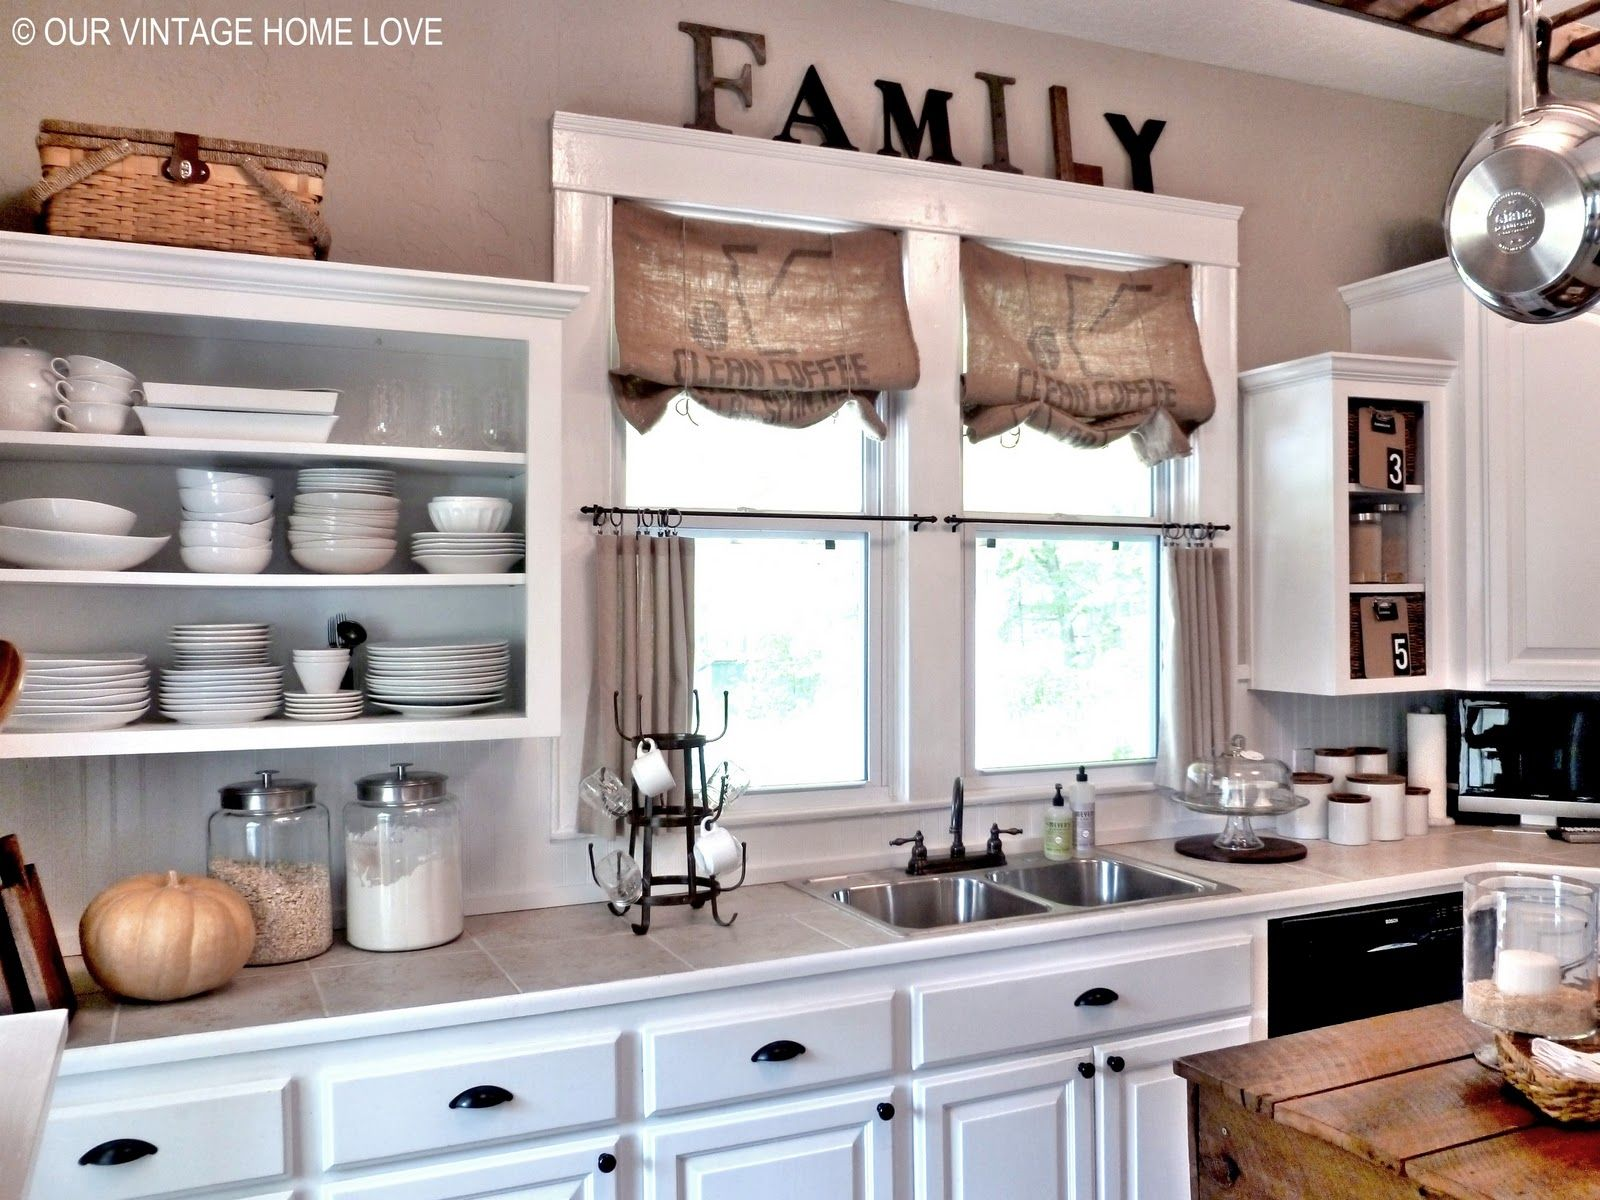 Above window decor  erin this could be so fun in your kitchen window treatment for